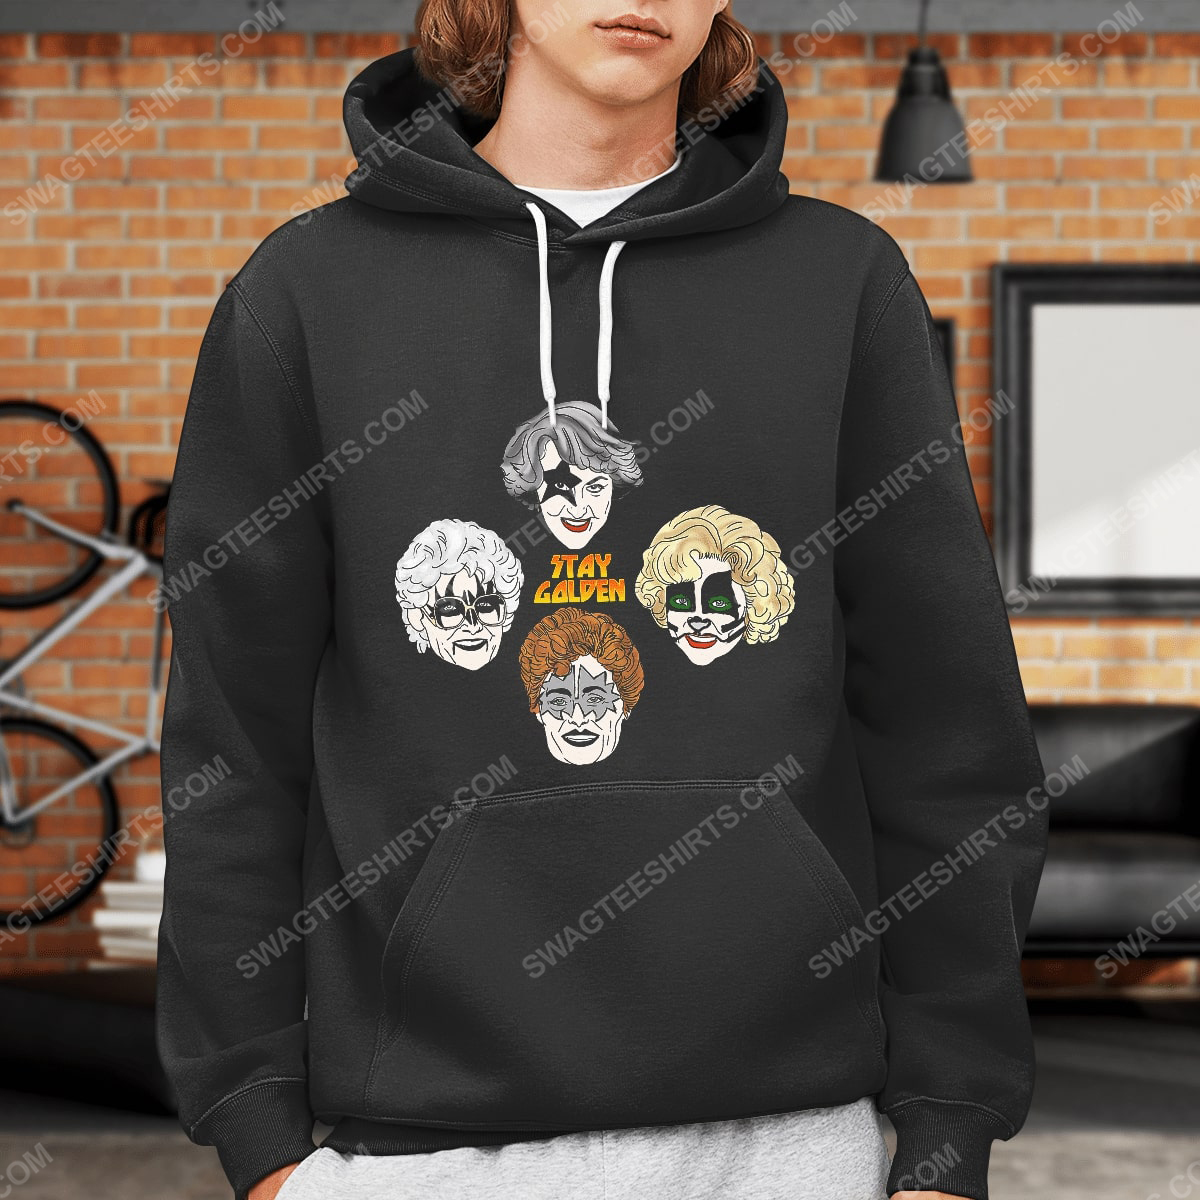 Kiss and the golden girls stay golden hoodie 1(1)